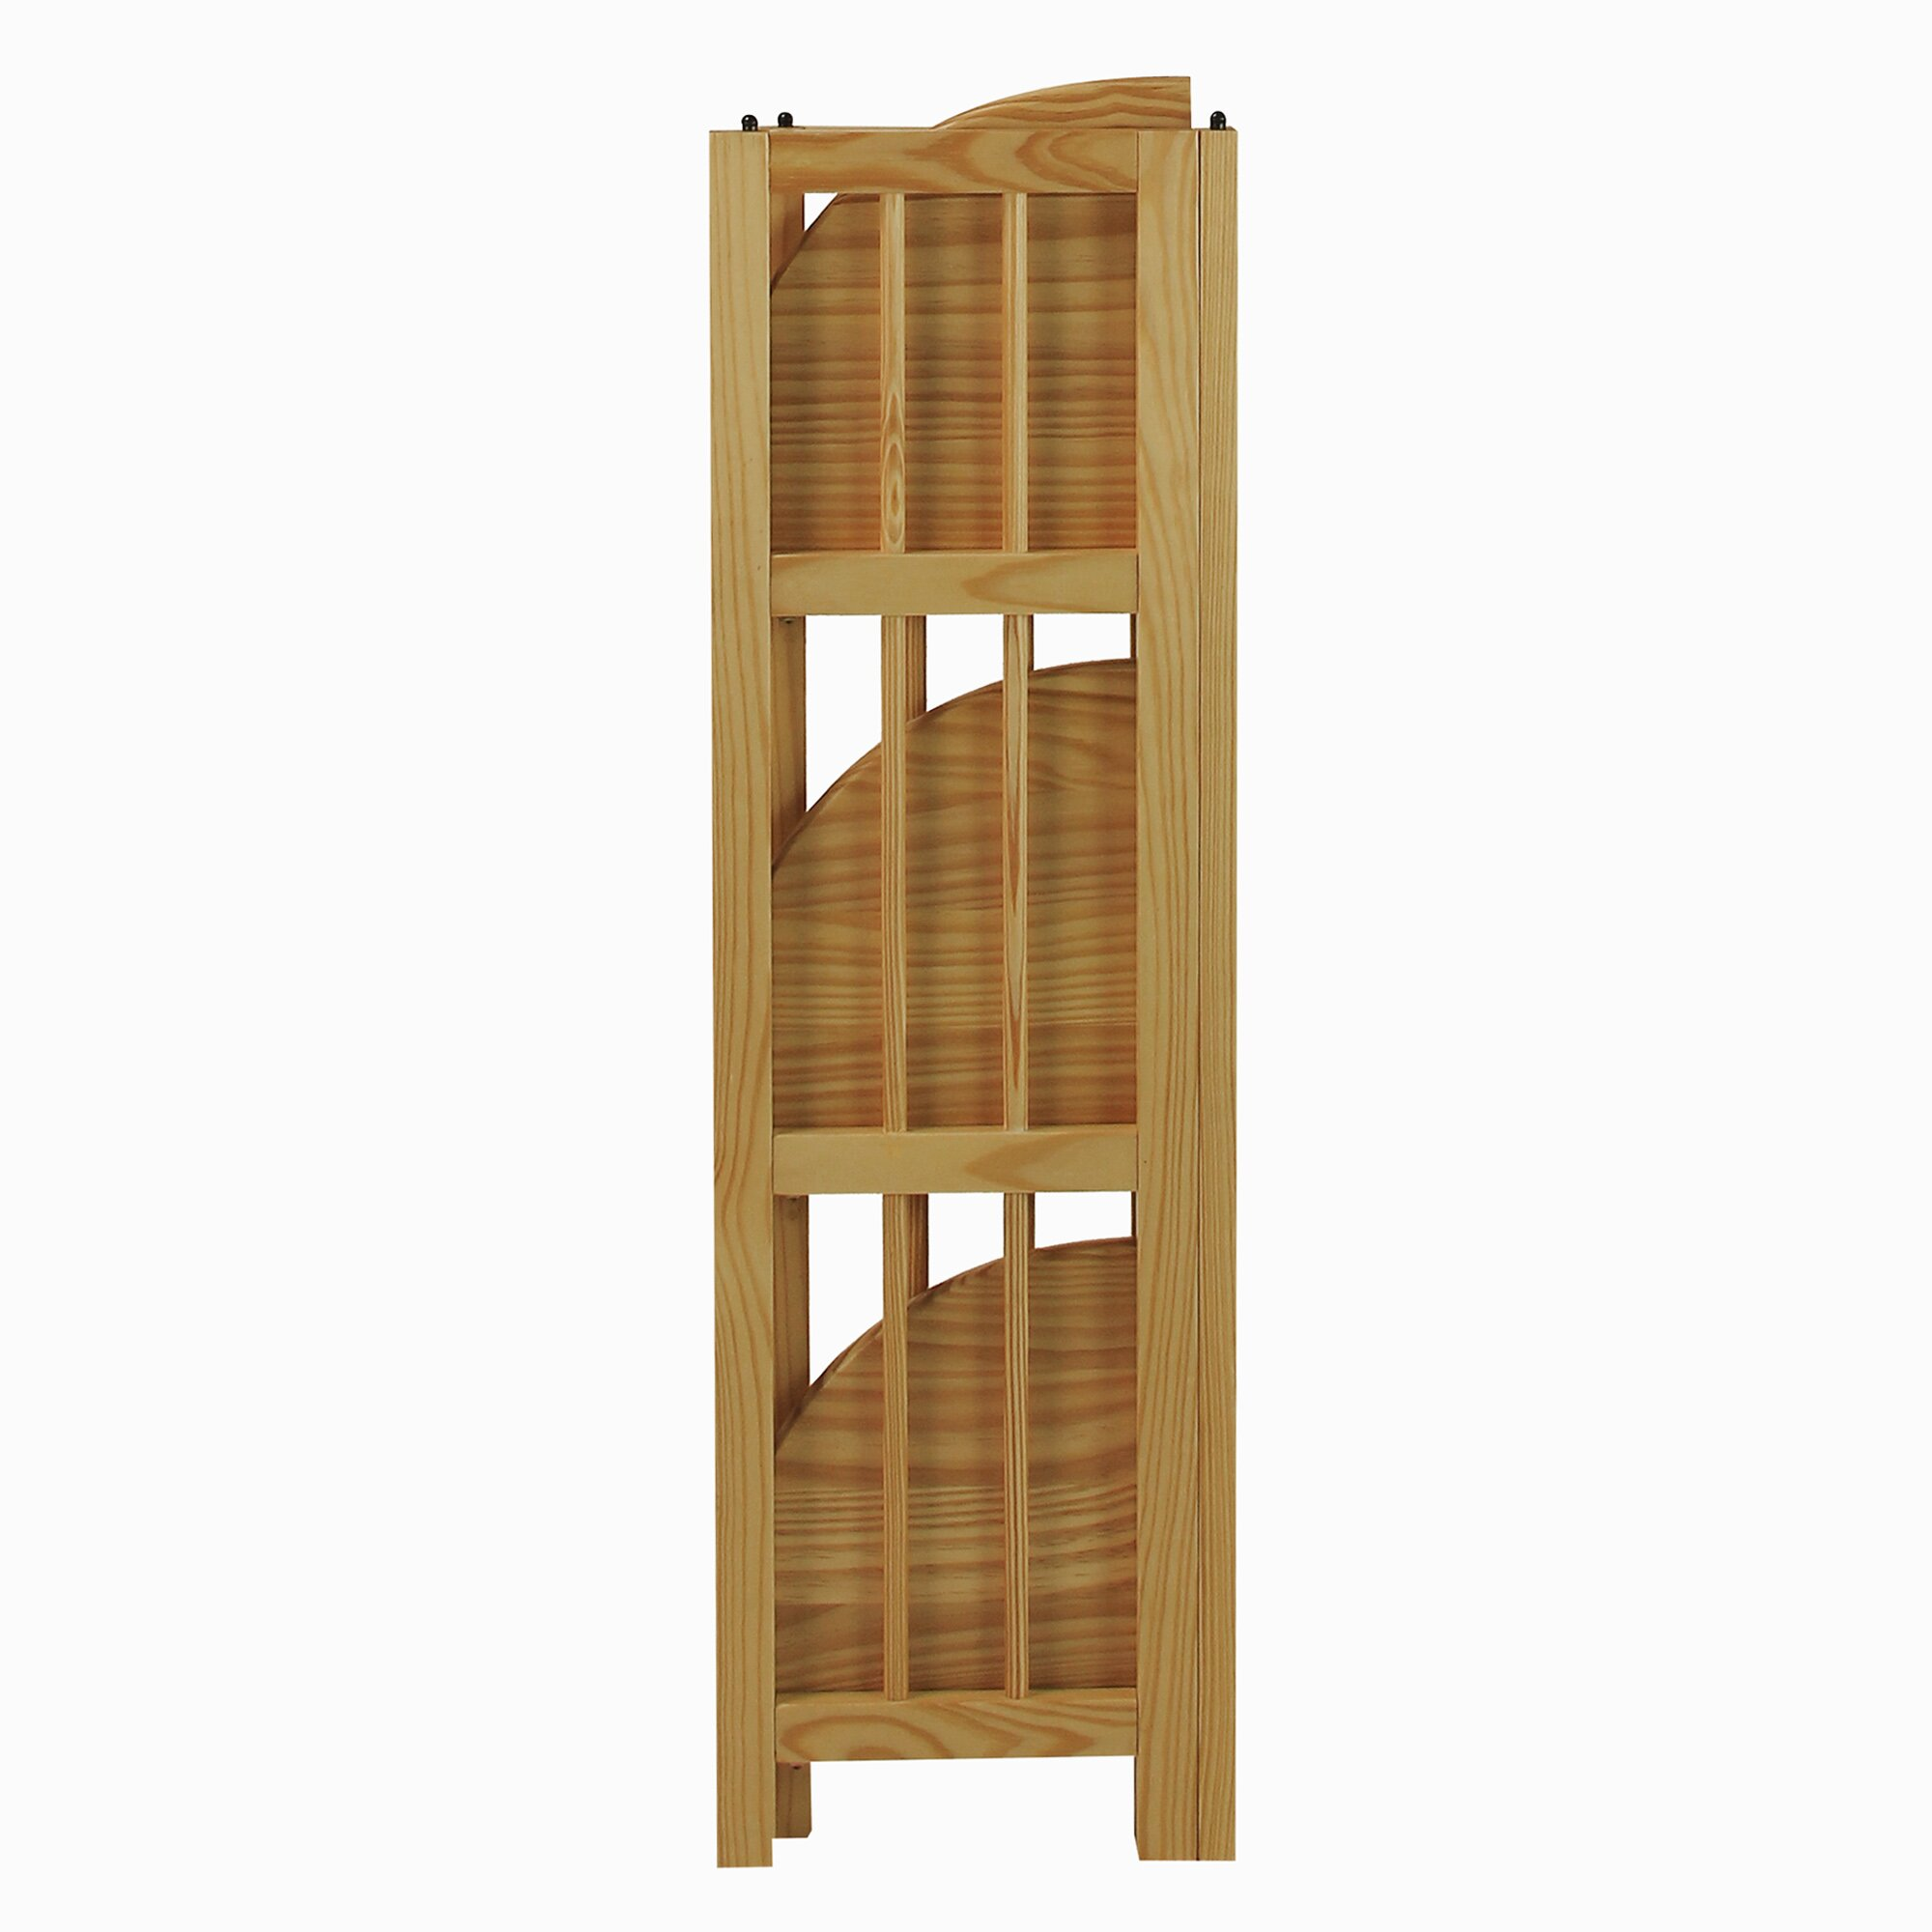 #402614 Casual Home 38 Corner Unit Bookcase & Reviews Wayfair with 2000x2000 px of Brand New Bookcase Corner Unit 20002000 pic @ avoidforclosure.info